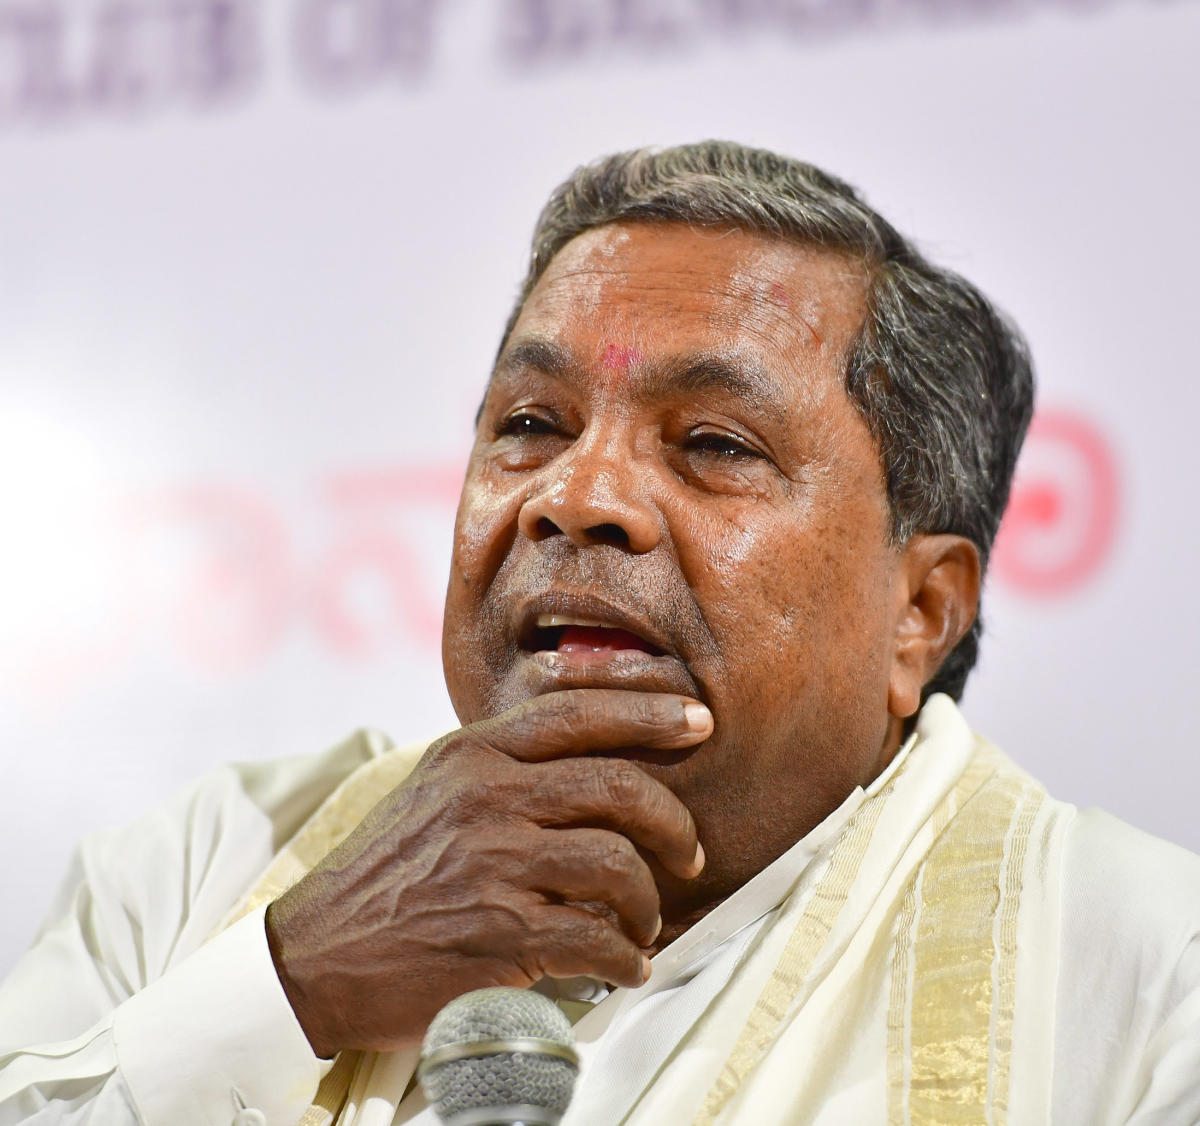 Reddy's remarks coming days after Siddaramaiah's comments about becoming chief minister again fuels speculation that all is not well within the Congress-JDS coalition. DH File Photo